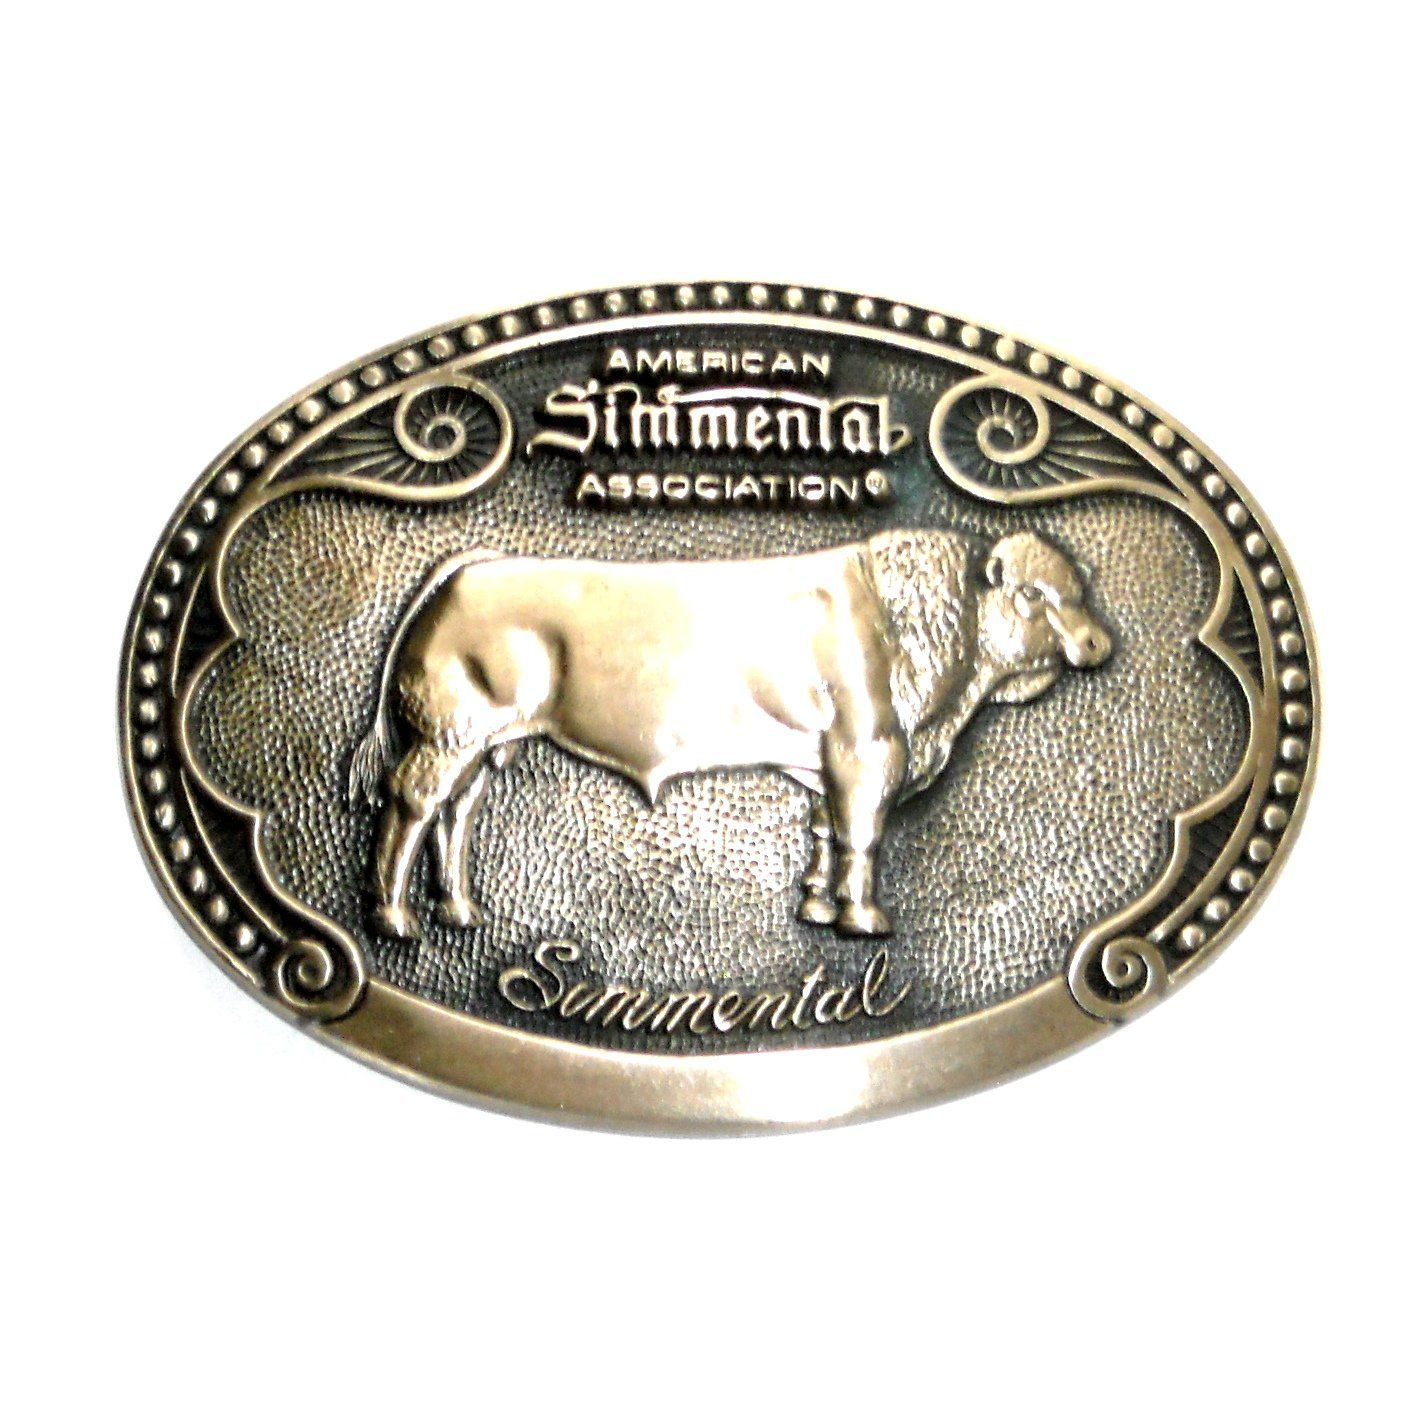 Buckle Tip Sets Tom Taylor Belts Buckles Bags Simmental Tony Lama First Edition Brass Belt Buckle Buckle Shack